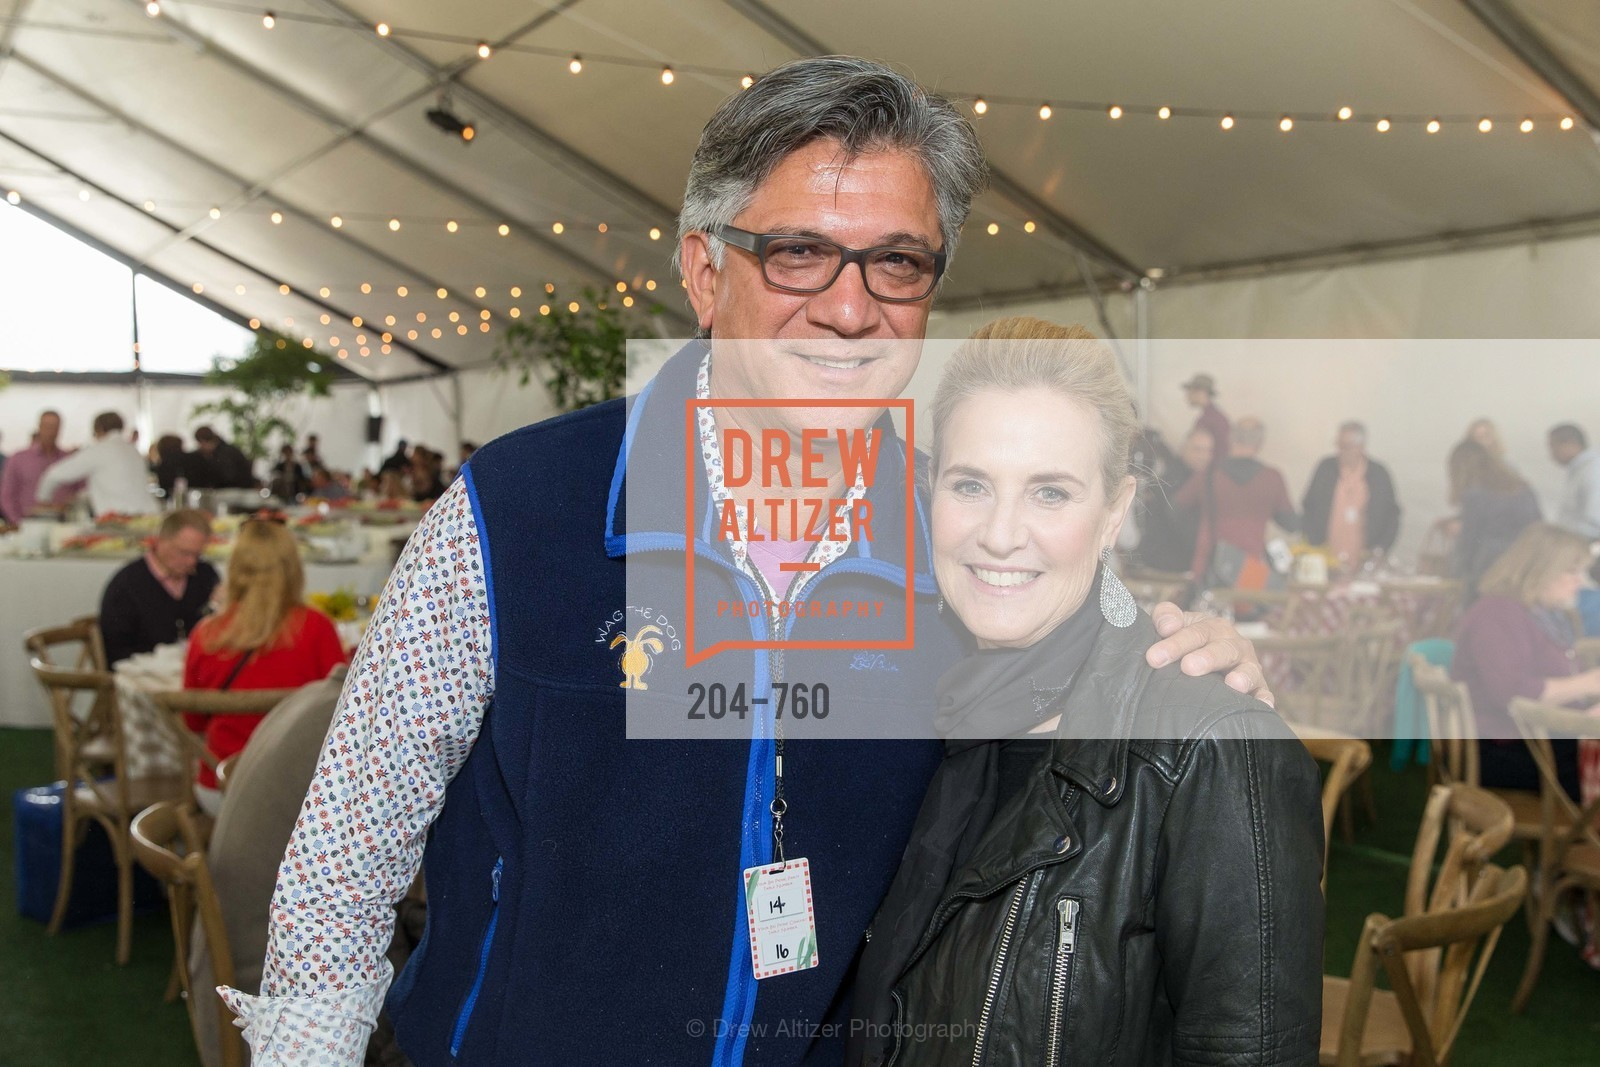 Mario Diaz, Lisa Goldman, The Big Picnic! A Benefit & Concert for STERN GROVE FESTIVAL, US, June 14th, 2015,Drew Altizer, Drew Altizer Photography, full-service agency, private events, San Francisco photographer, photographer california